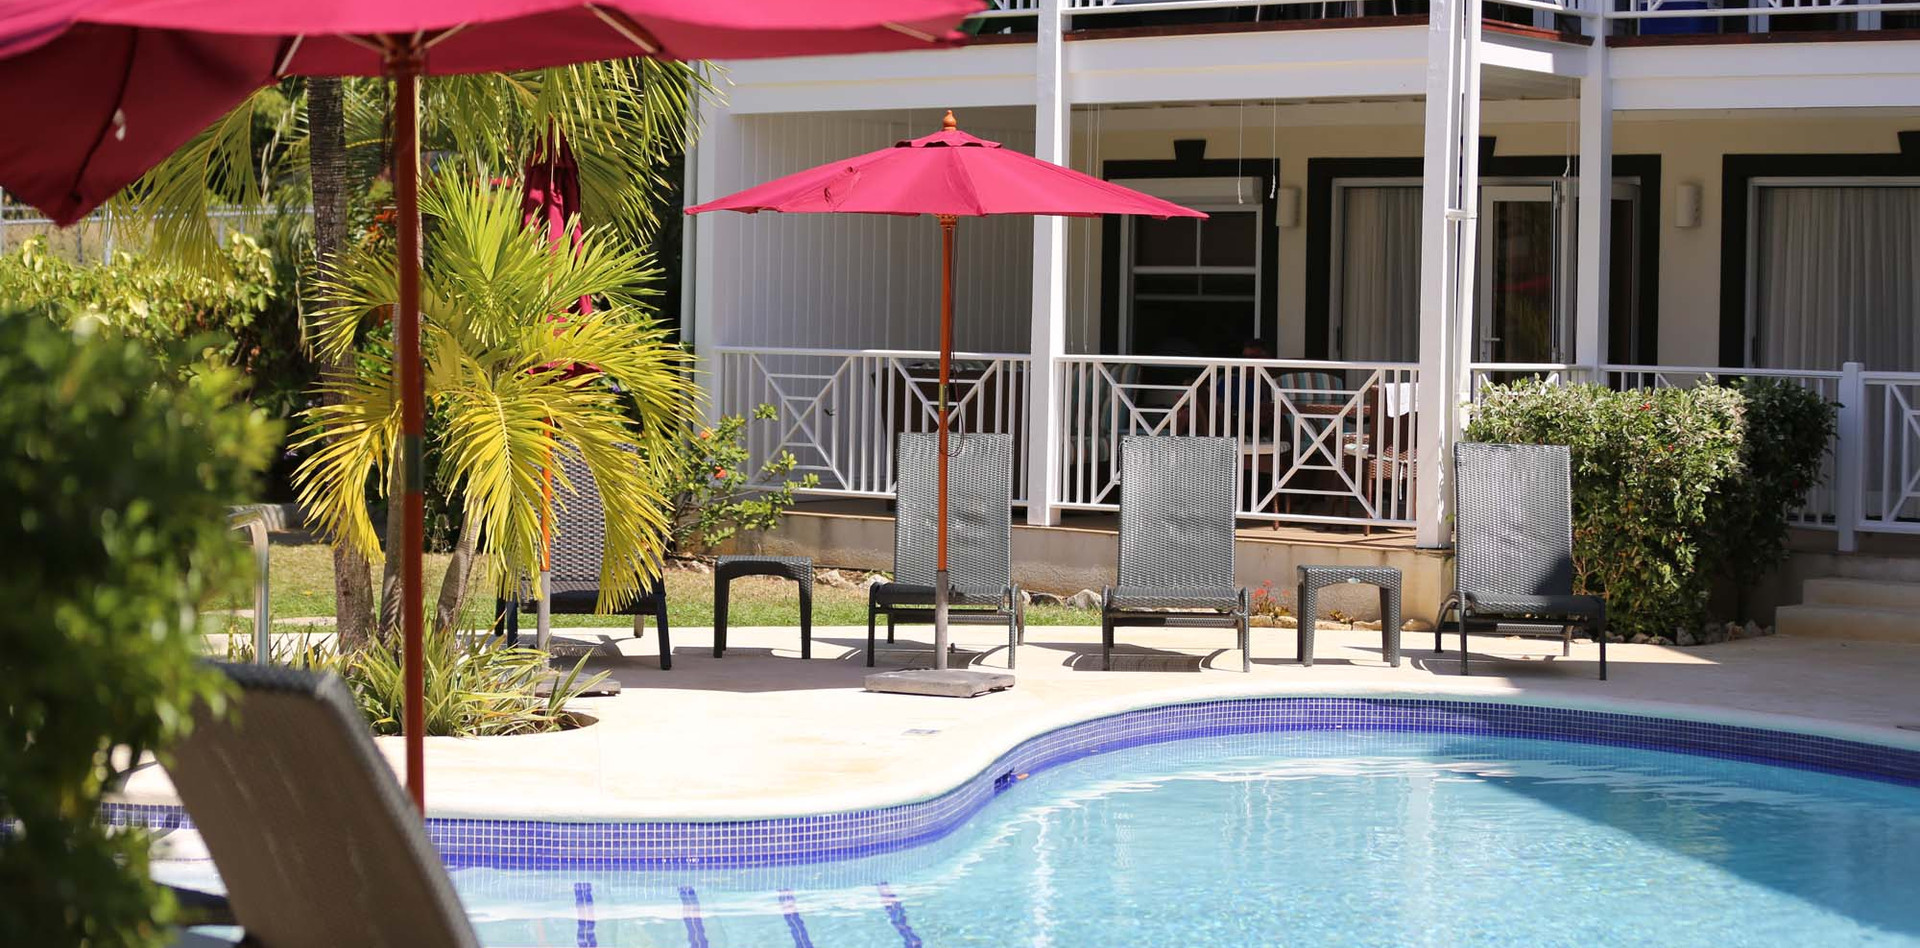 1077-lantana-barbados-vacation-rentals.j